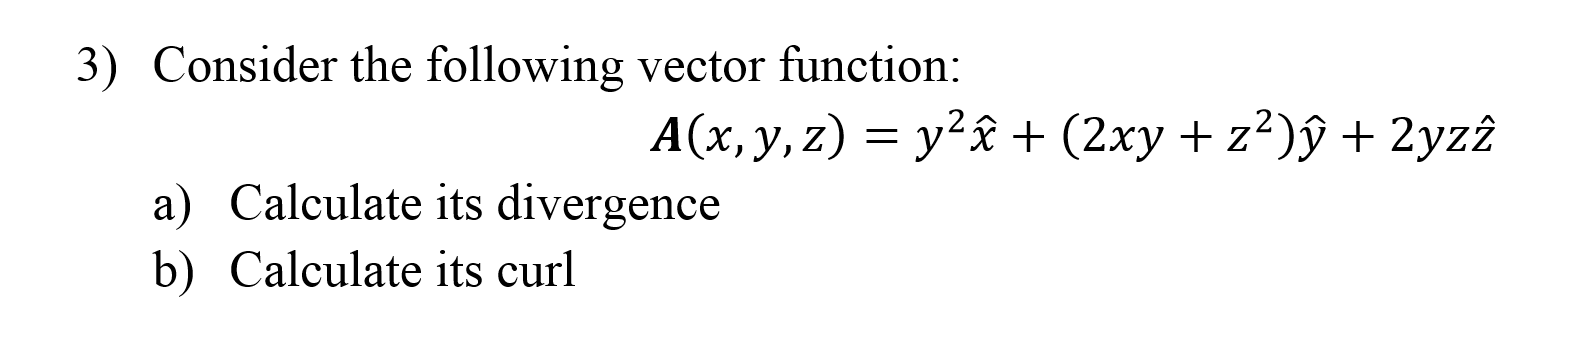 Consider the following vector function: A(x, y, z)